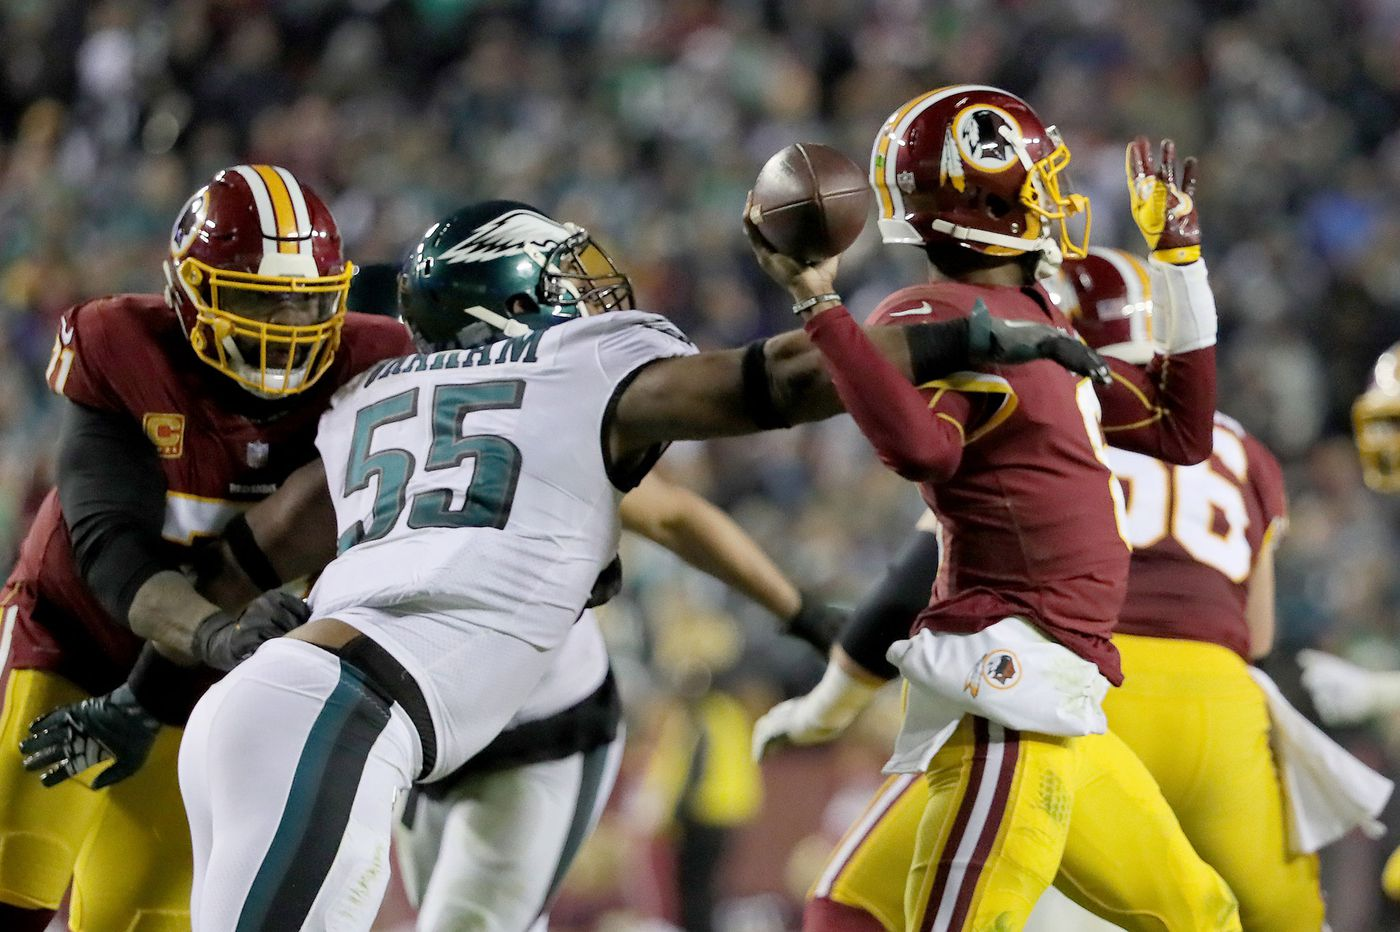 One reason for the Eagles' late-season surge? Better tackling on defense.